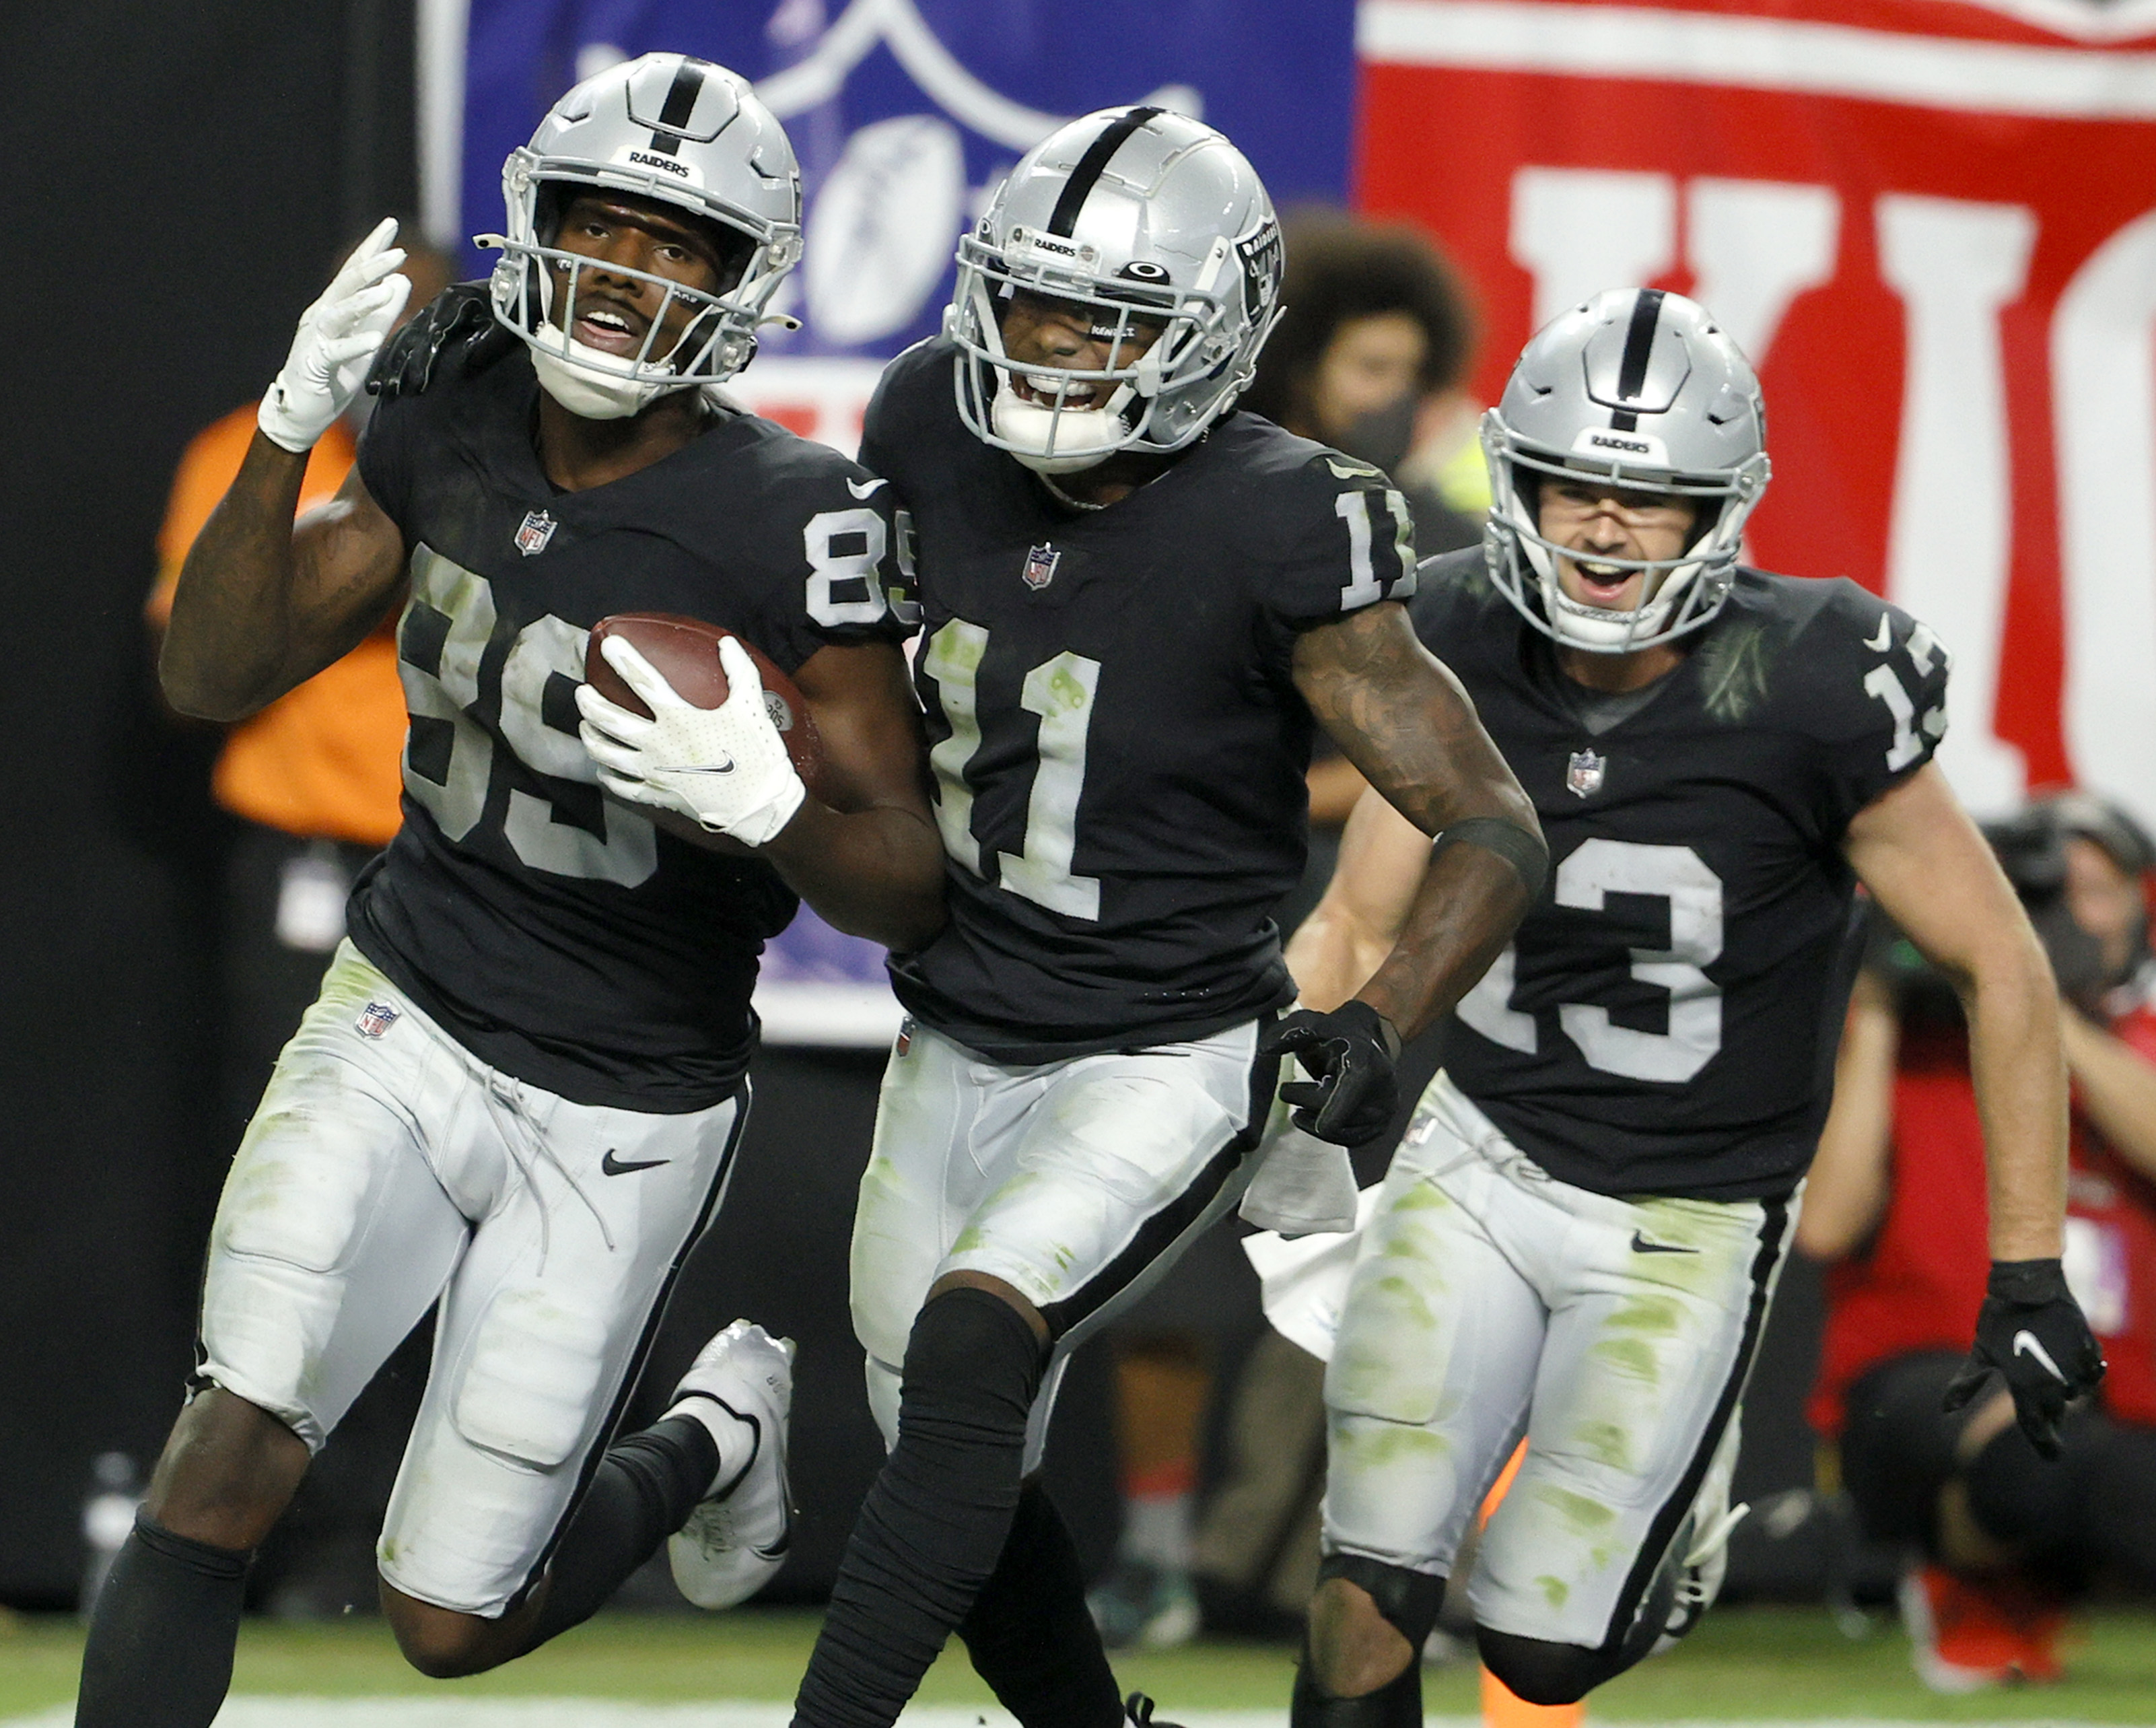 Bryan Edwards of the Las Vegas Raiders celebrates with Henry Ruggs III and Hunter Renfrow after scoring a touchdown that was called down at the 1-yard line after a review during overtime of their game against the Baltimore Ravens at Allegiant Stadium on September 13, 2021 in Las Vegas, Nevada. The Raiders defeated the Ravens 33-27 in overtime.